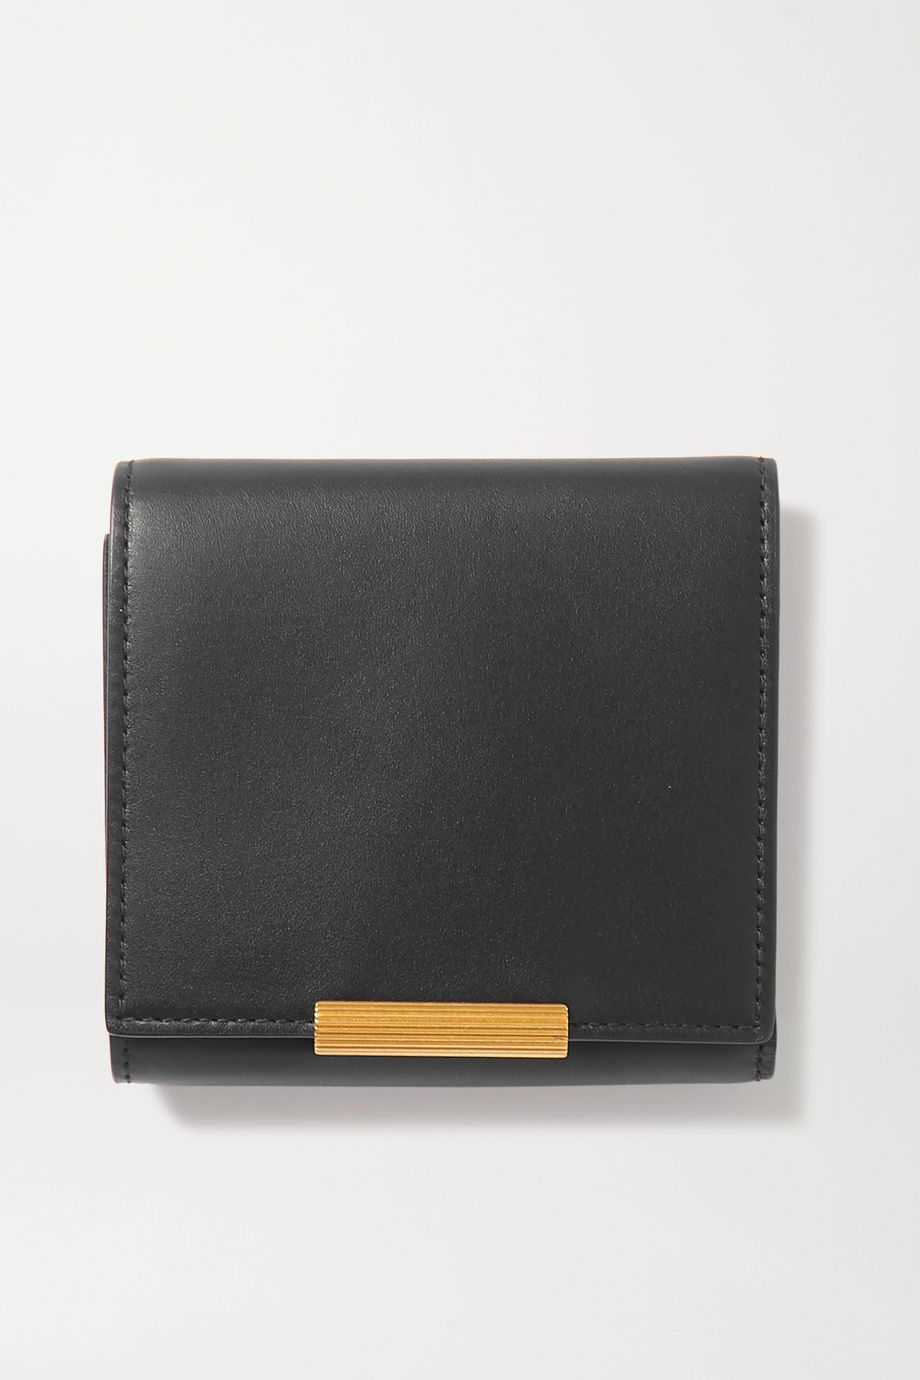 Bottega Veneta Embellished leather wallet